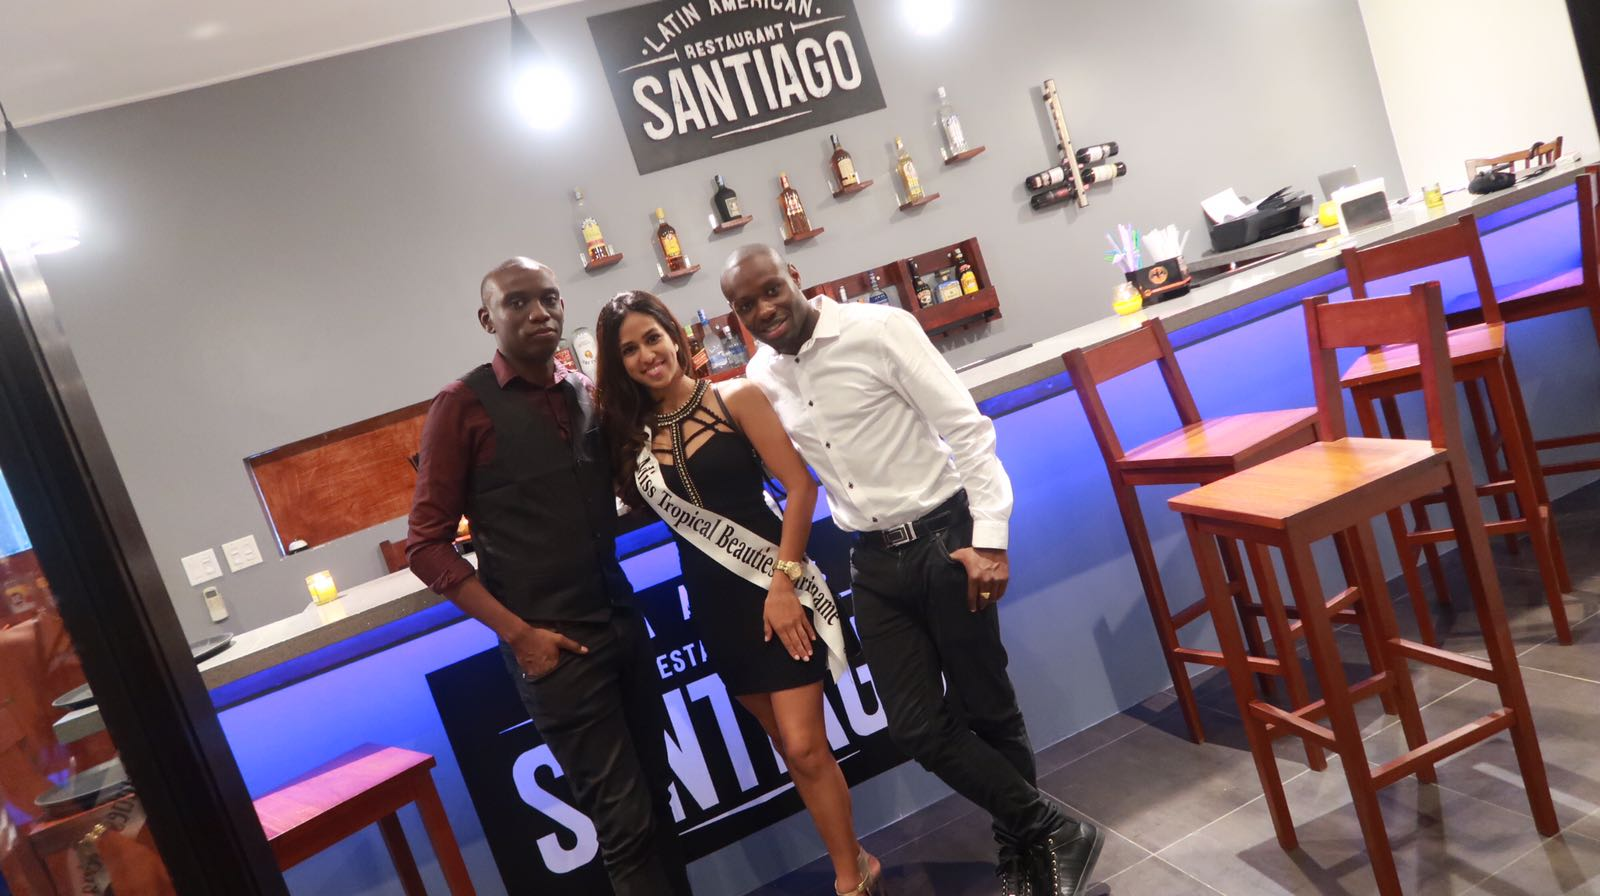 Opening of Santiago based in Suriname